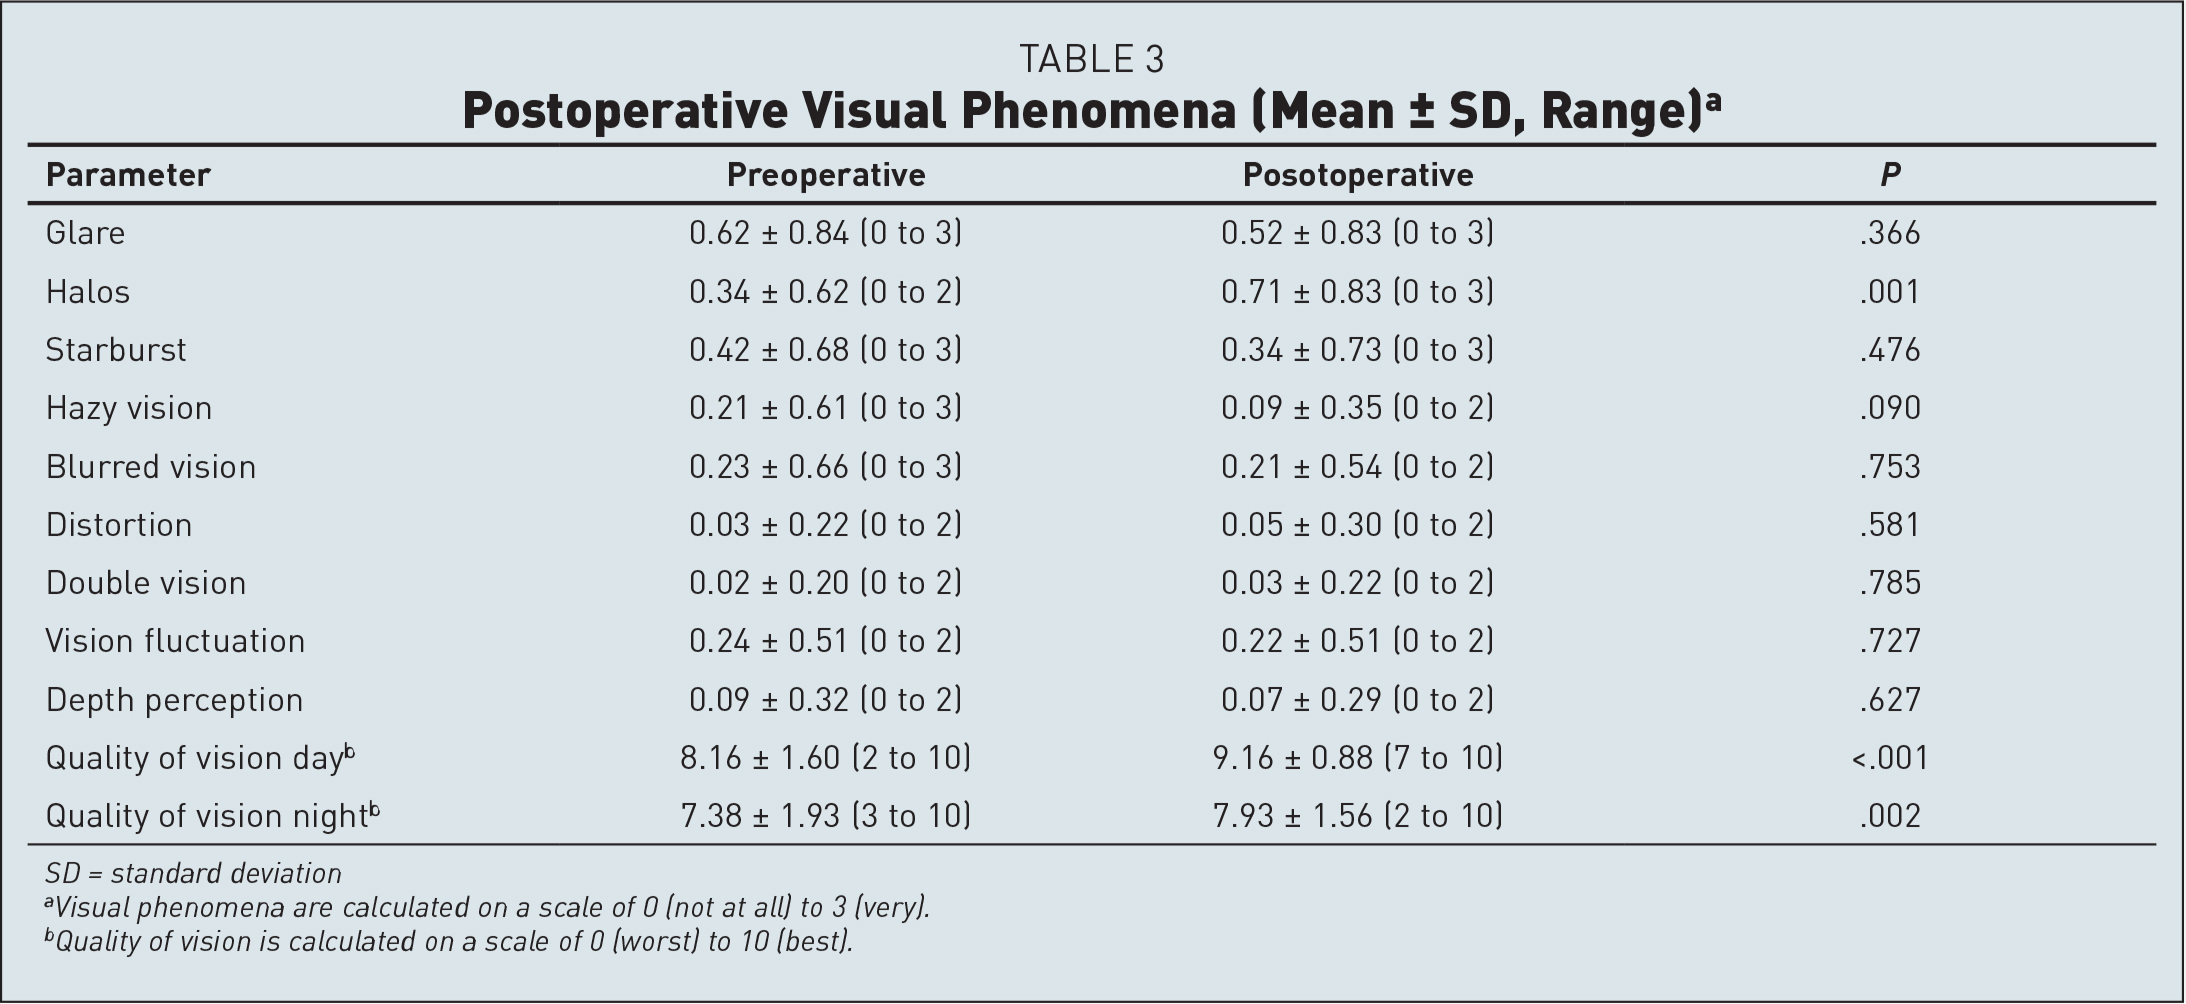 Postoperative Visual Phenomena (Mean ± SD, Range)a